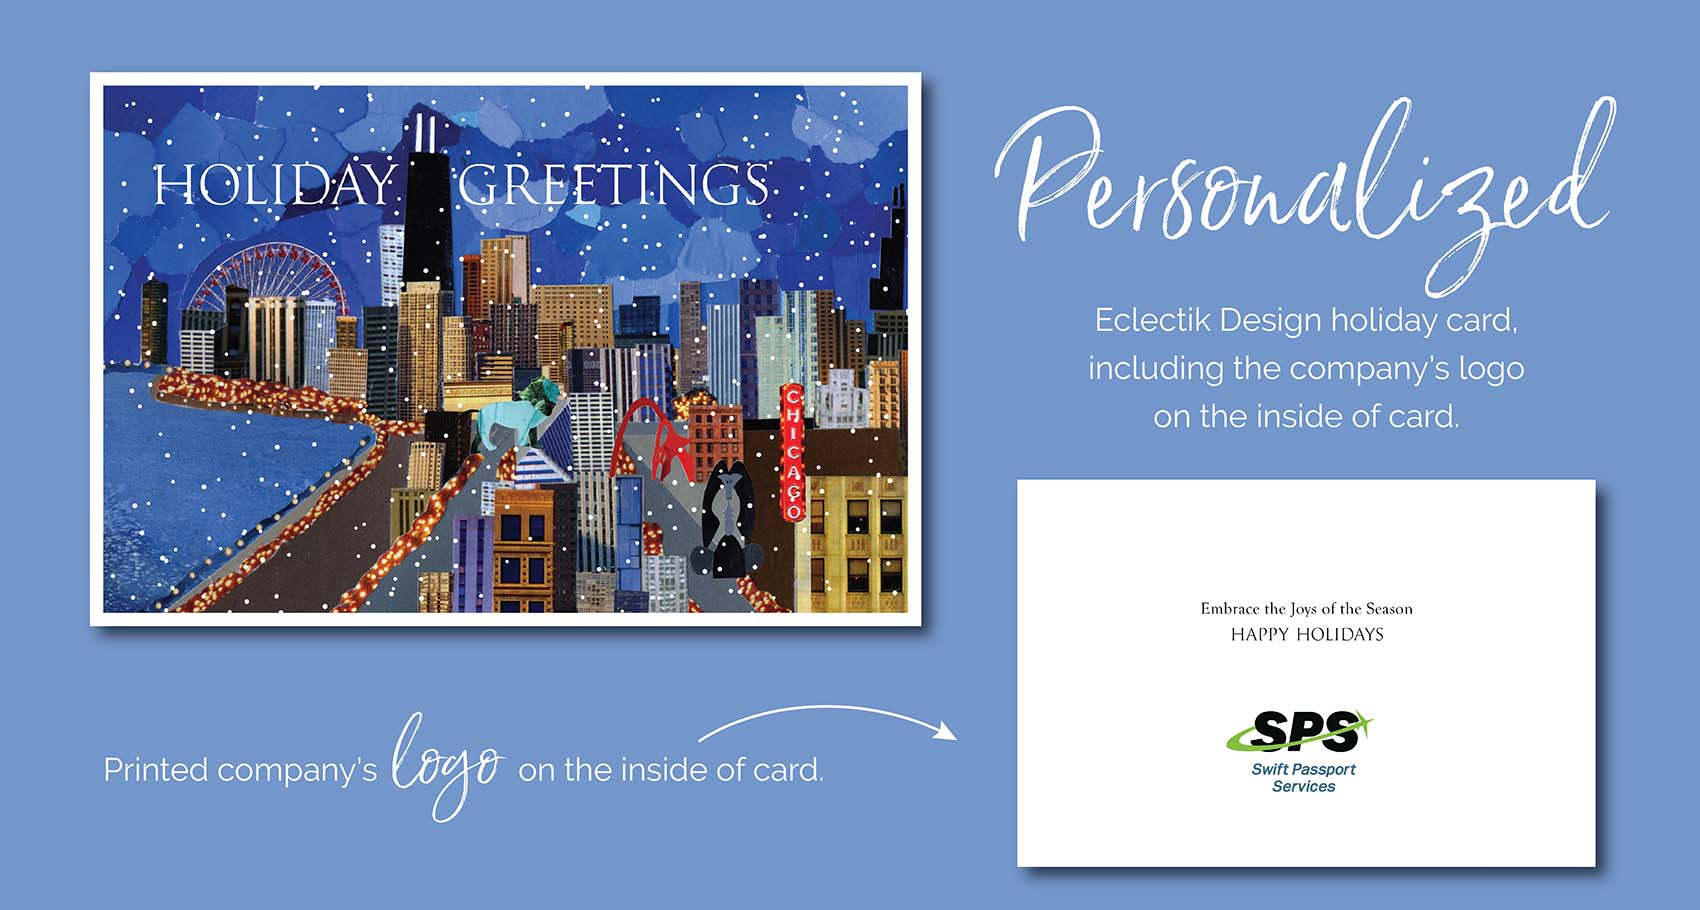 Personalized Holiday Greetings Holiday Card by Eclectik Design